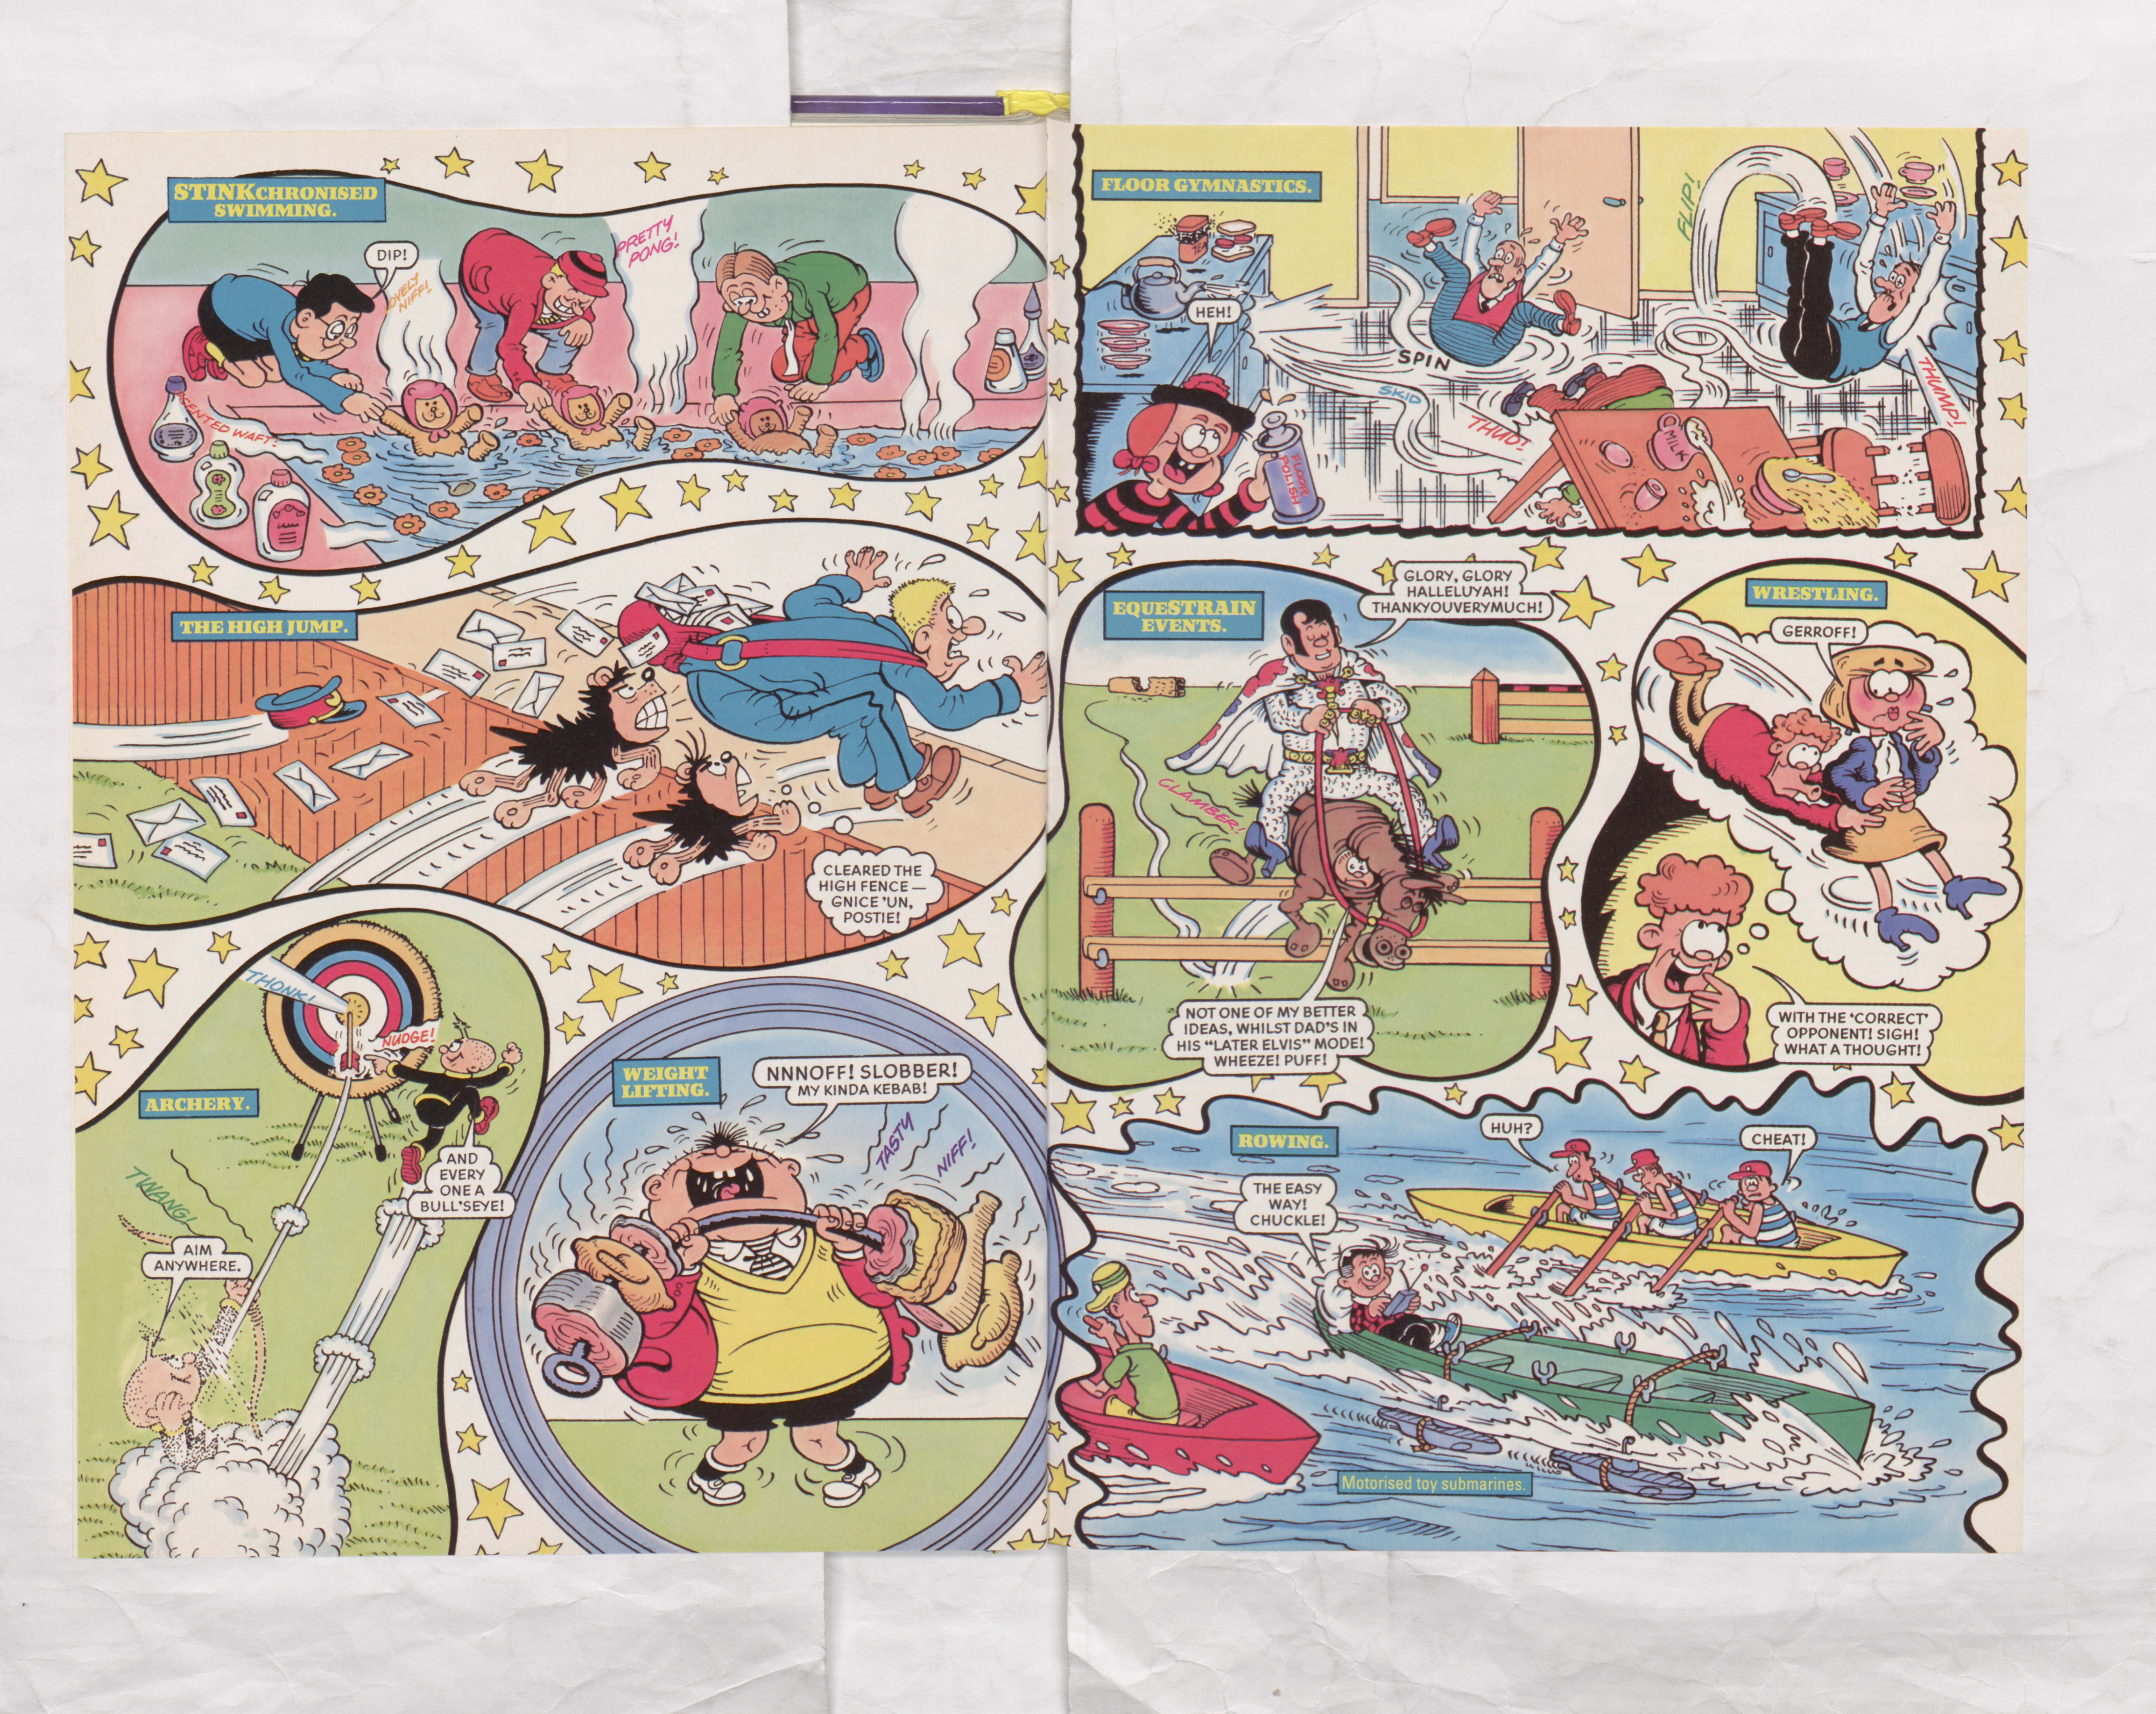 The Beano Stars Cruise Round the World - Beano Book 2000 Annual - Page 12 and 13